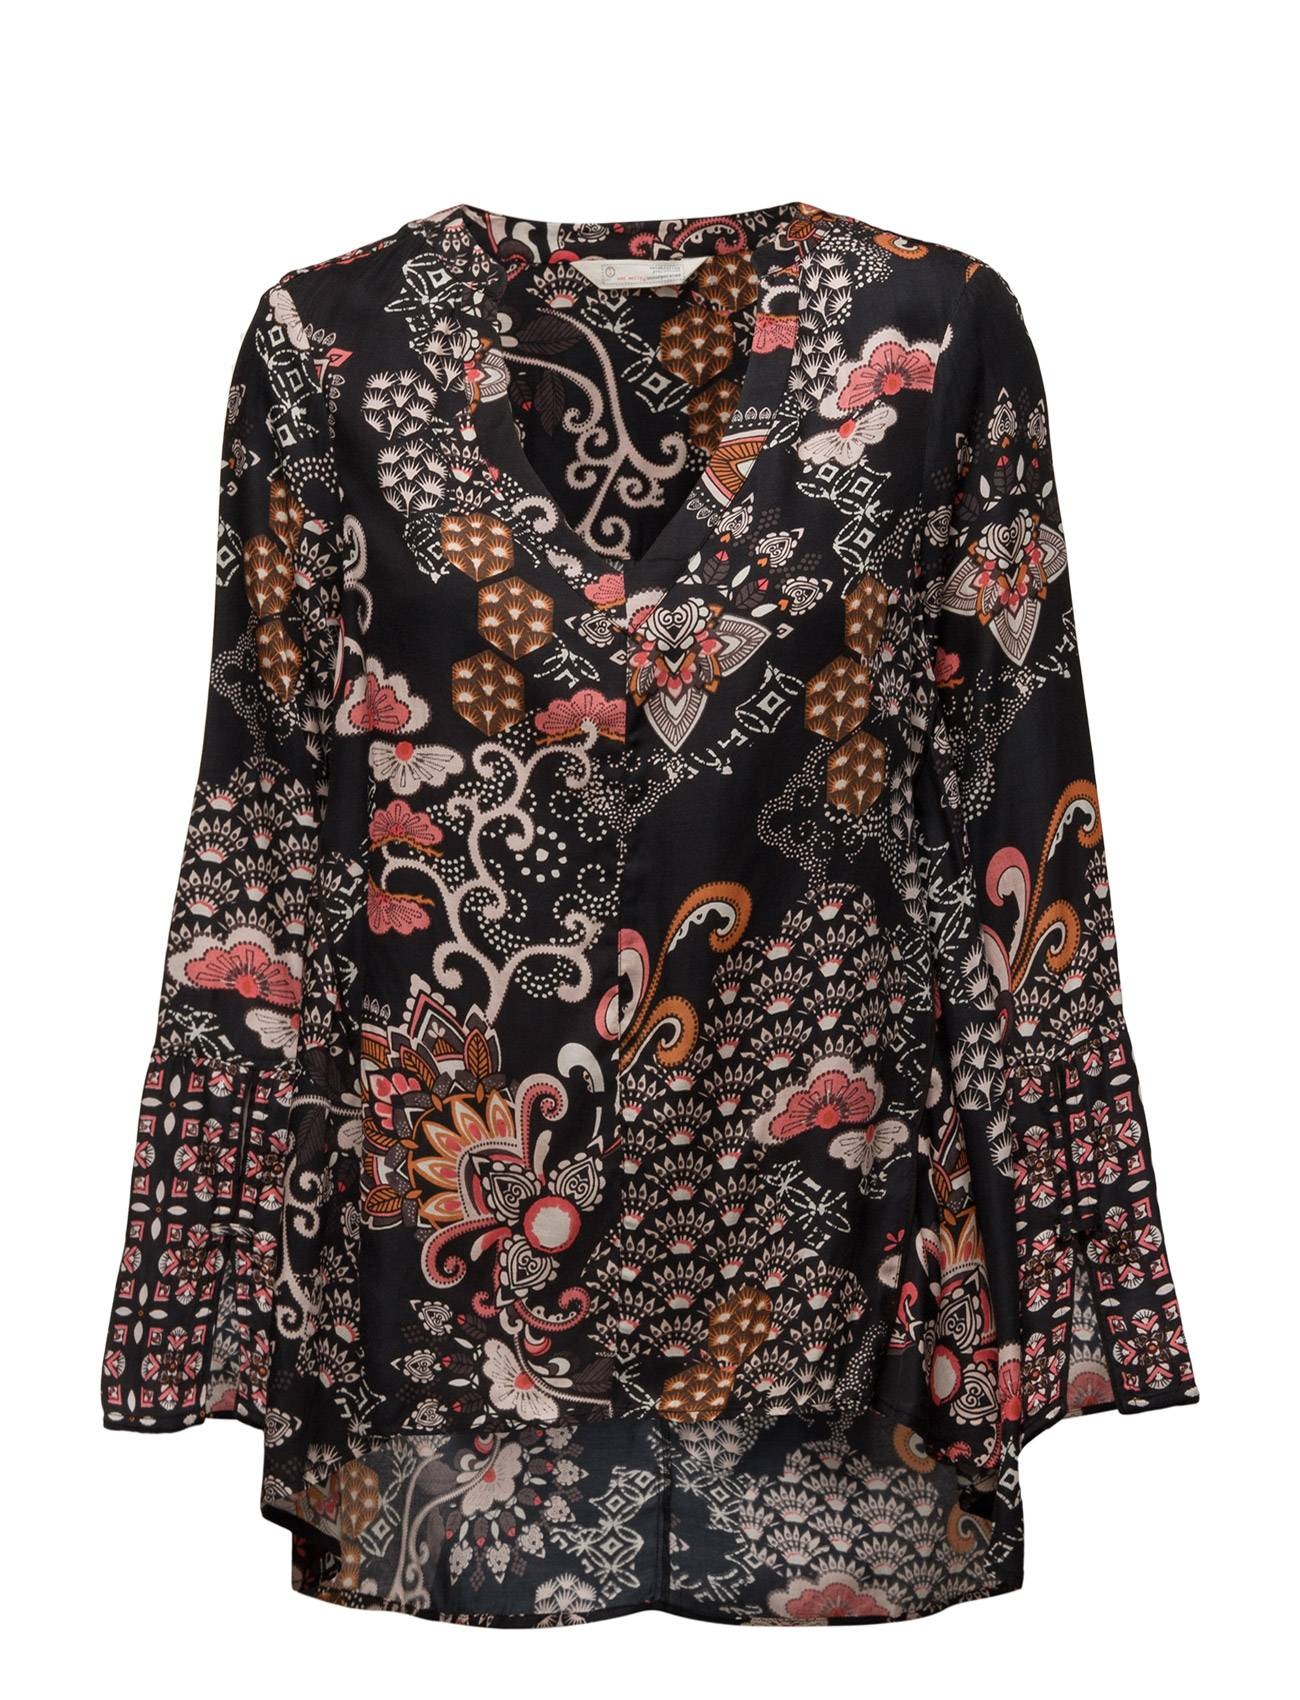 ODD MOLLY Intuition Blouse